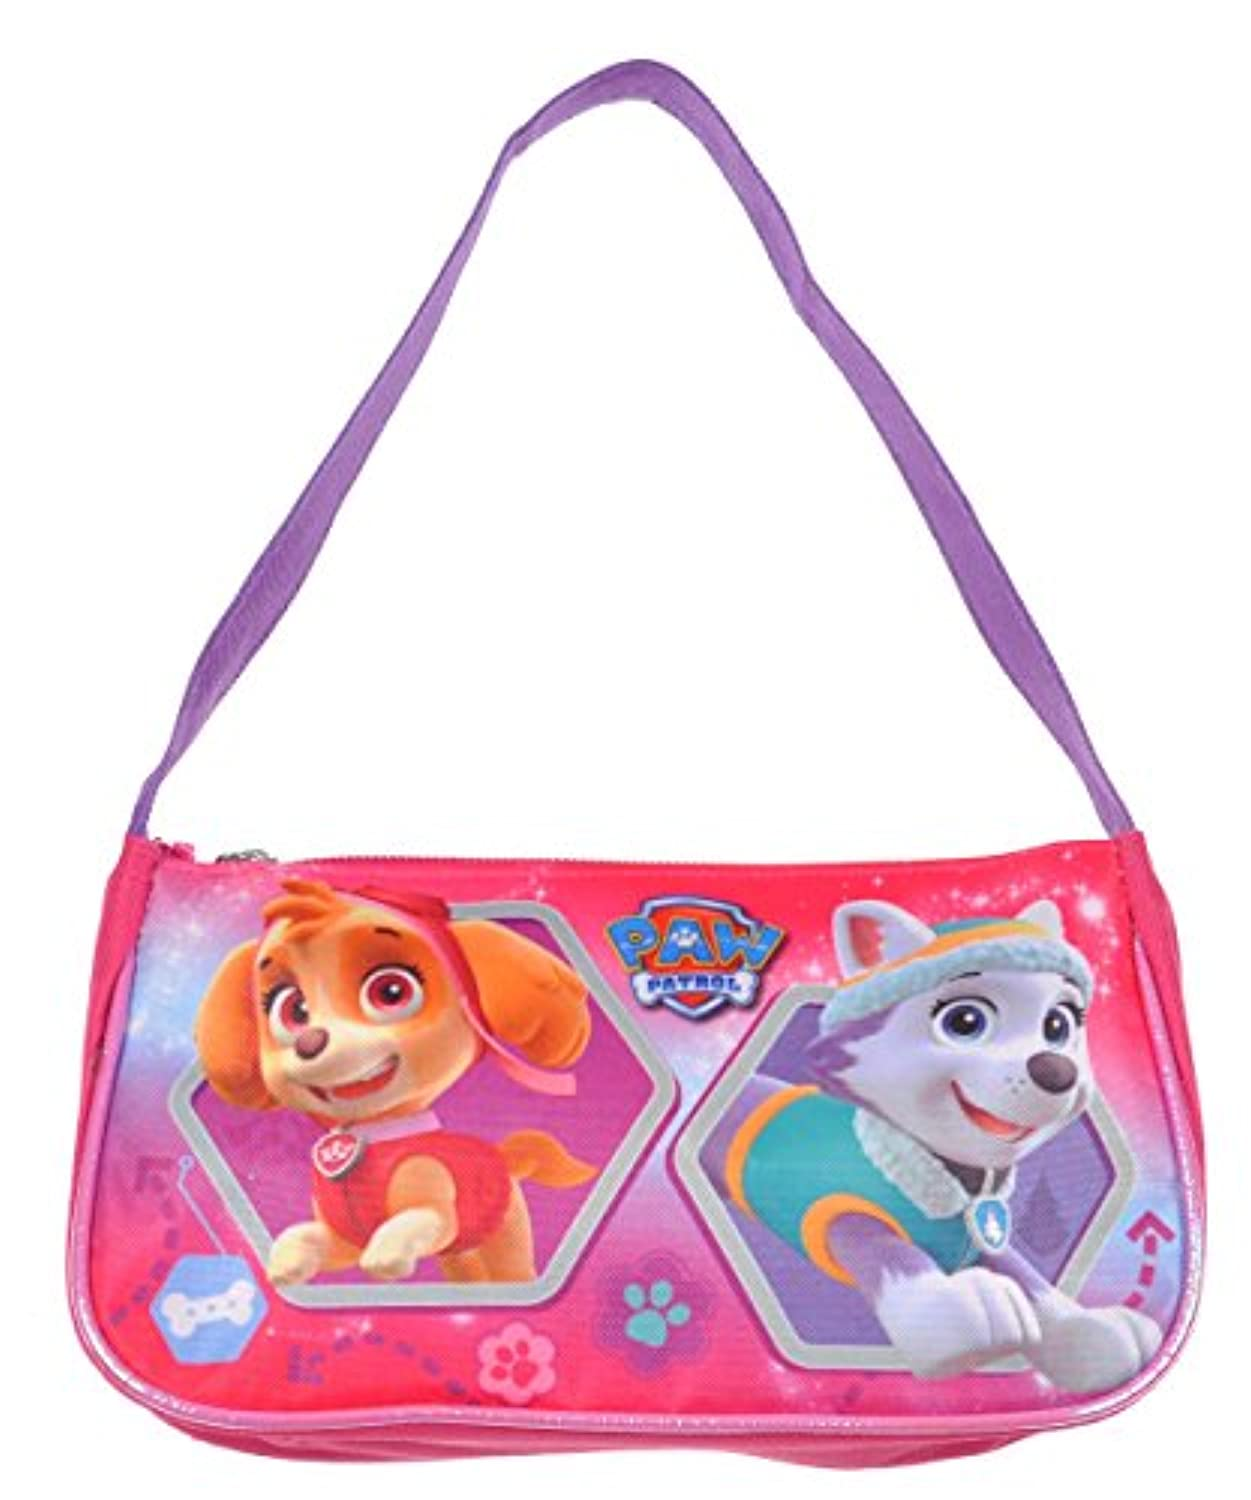 [Paw Patrol]Paw Patrol Sweet Pups Purse pink/purple, one size 025266 [並行輸入品]